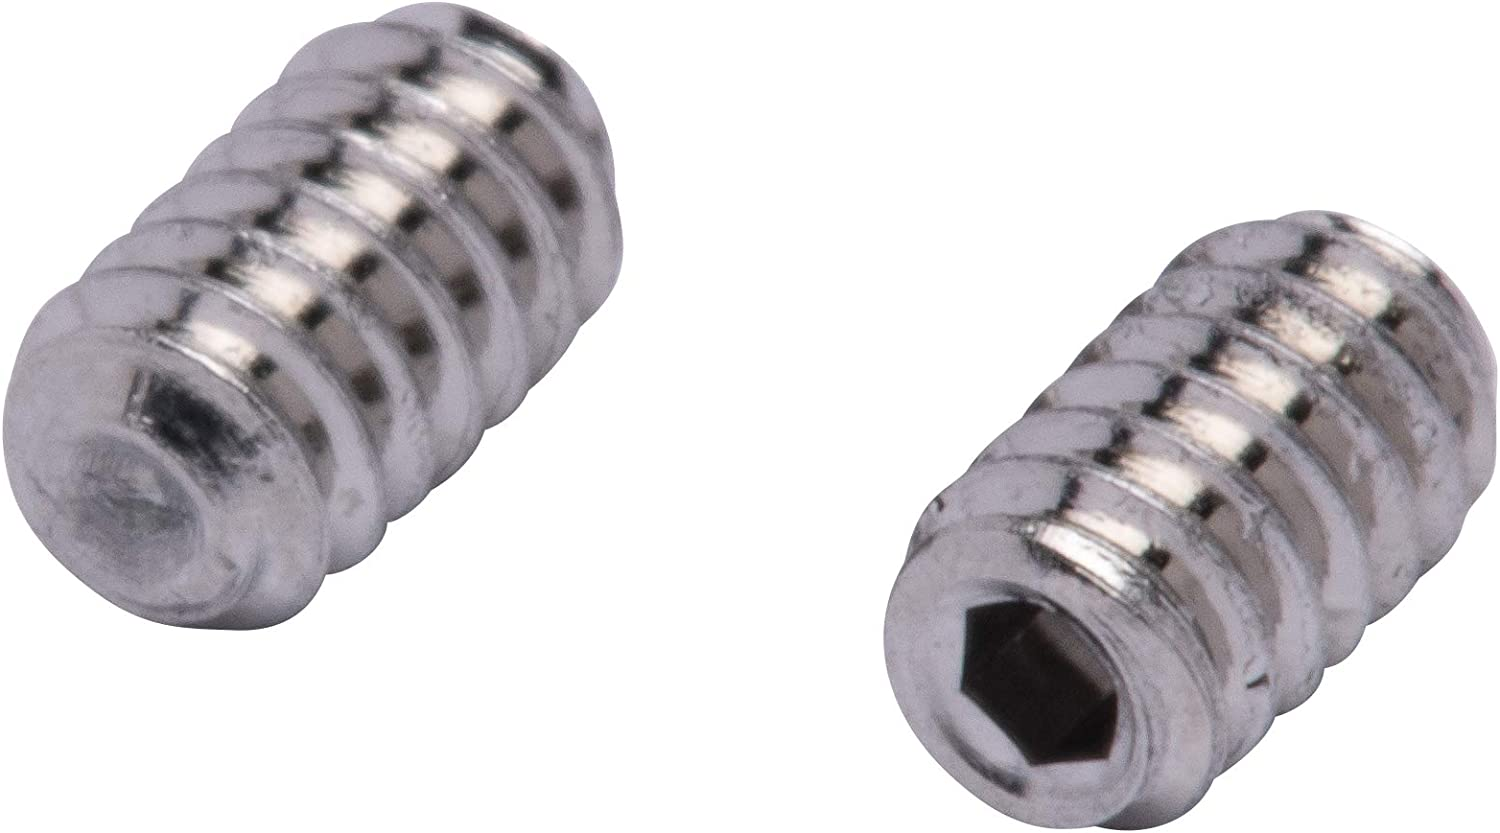 18-8 Stainless Steel Screws by Bolt Dropper 50 pc 304 1//4-20 X 3//8 Stainless Set Screw with Hex Allen Head Drive and Oval Point